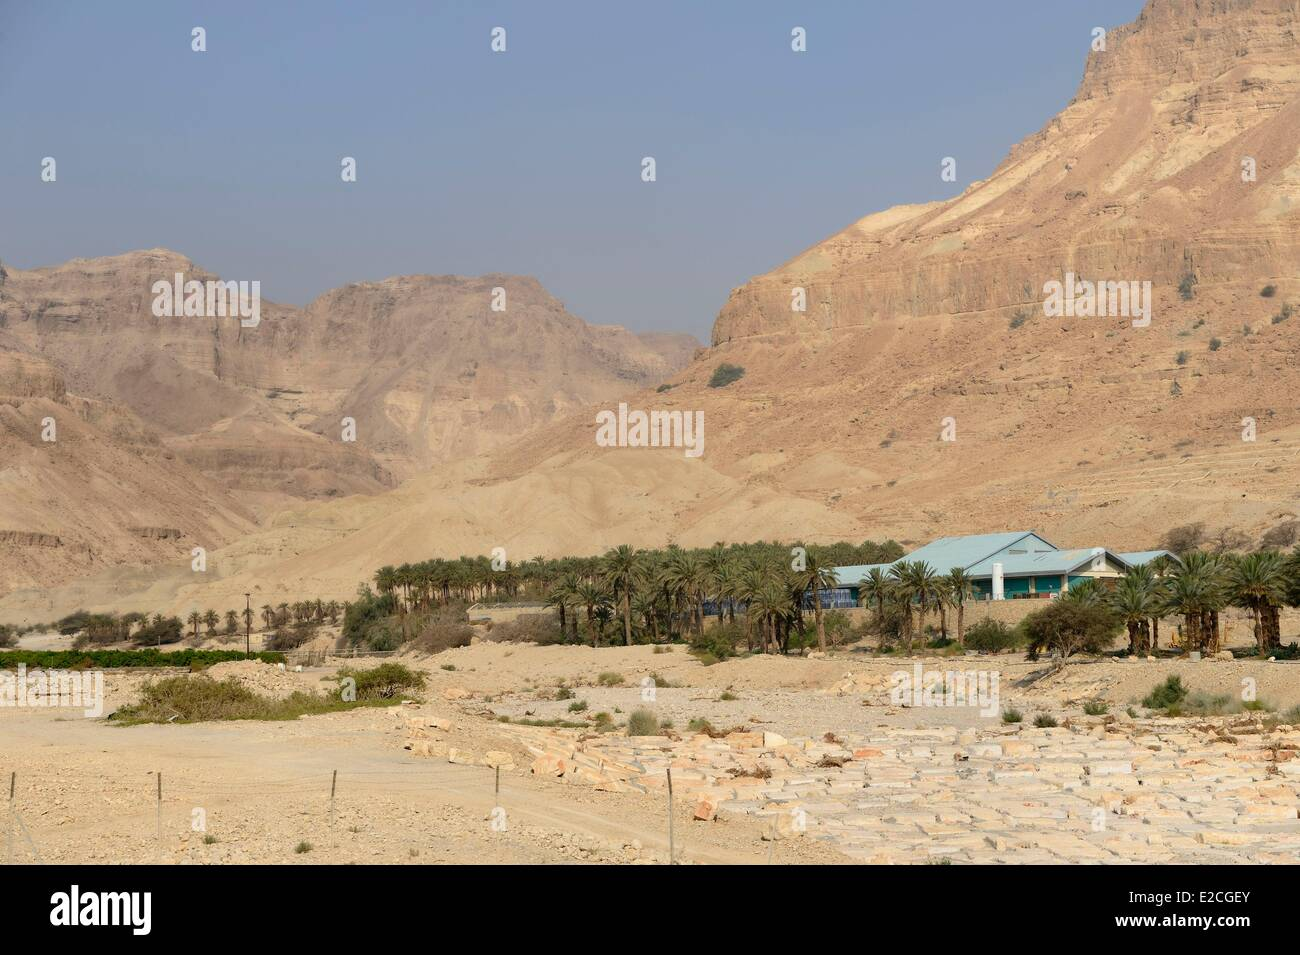 Palestine, West Bank (disputed territory), Kibbutz on the Dead Sea - Stock Image